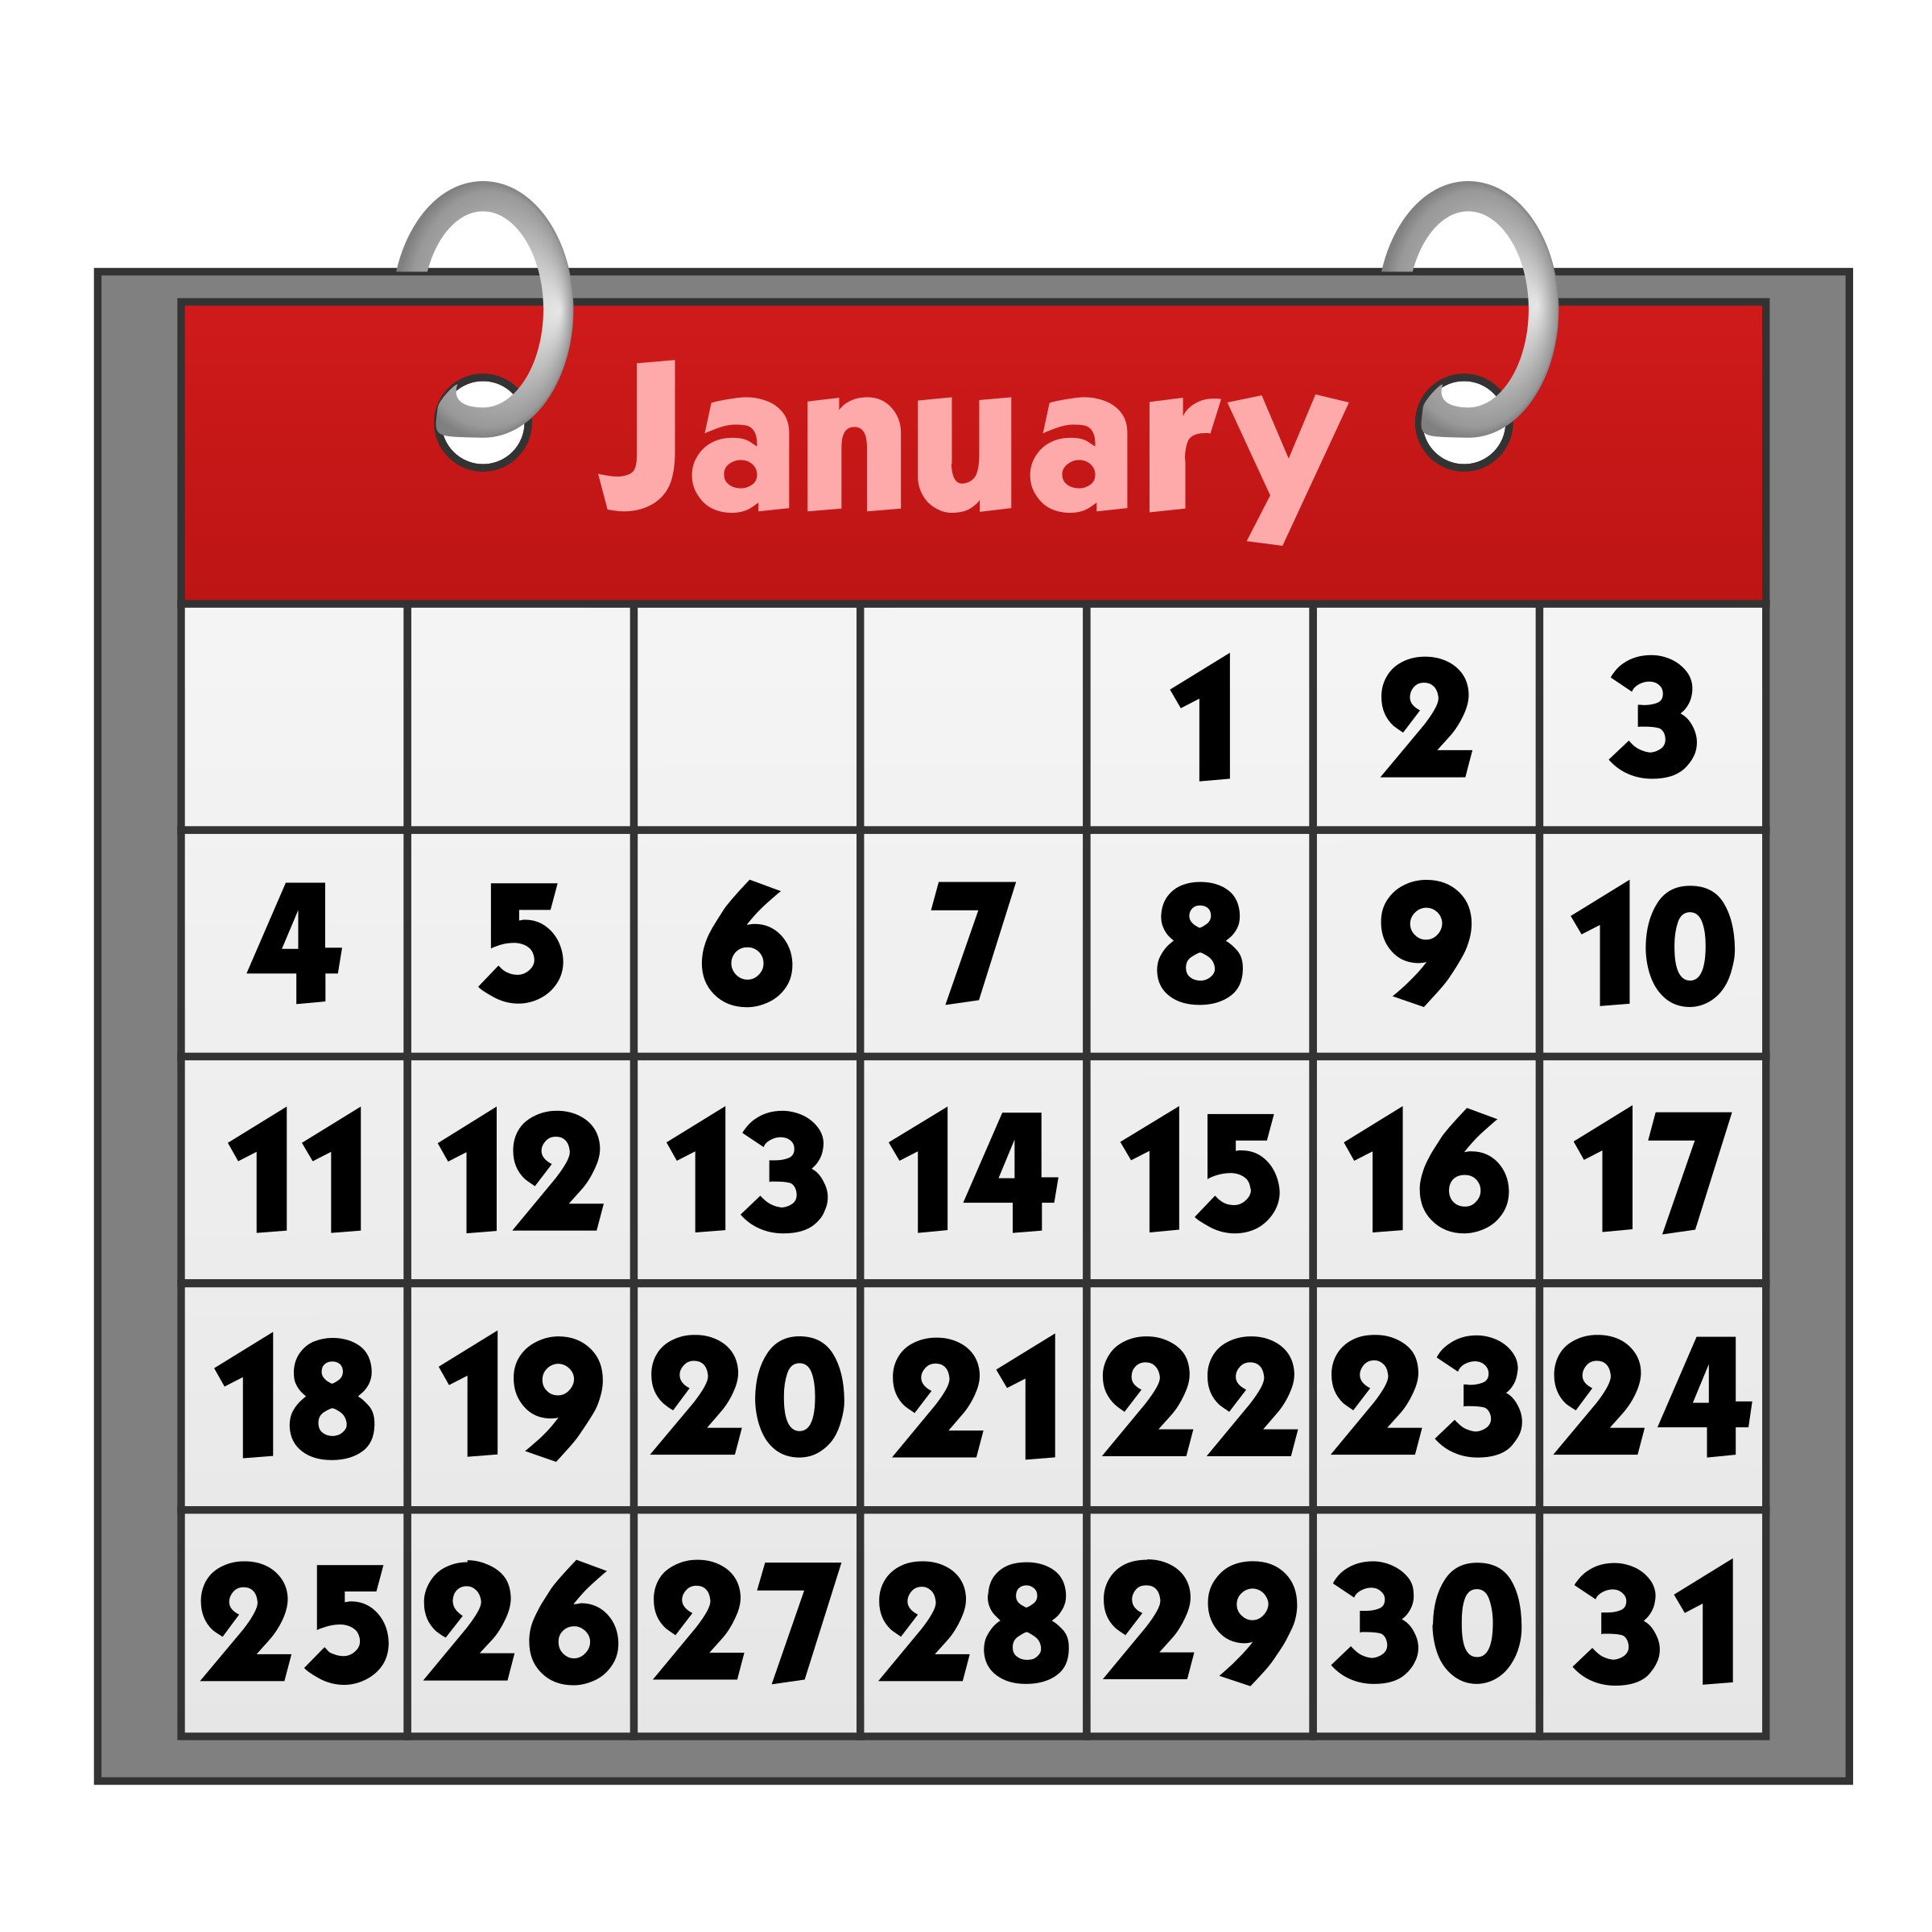 Clipart. Calendar Free To Use Cliparts 2-Clipart. Calendar free to use cliparts 2-12